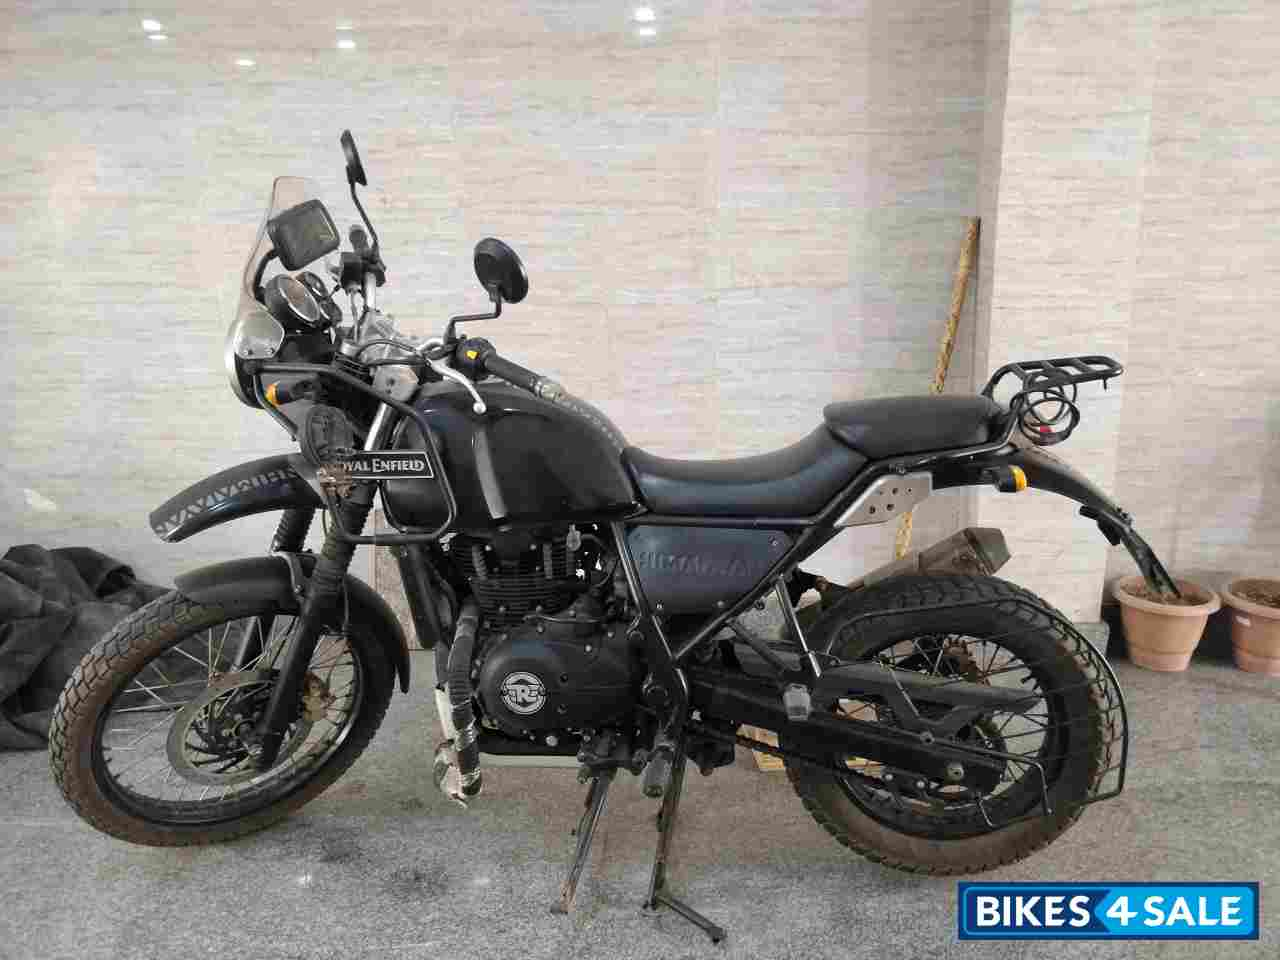 Black Royal Enfield Himalayan